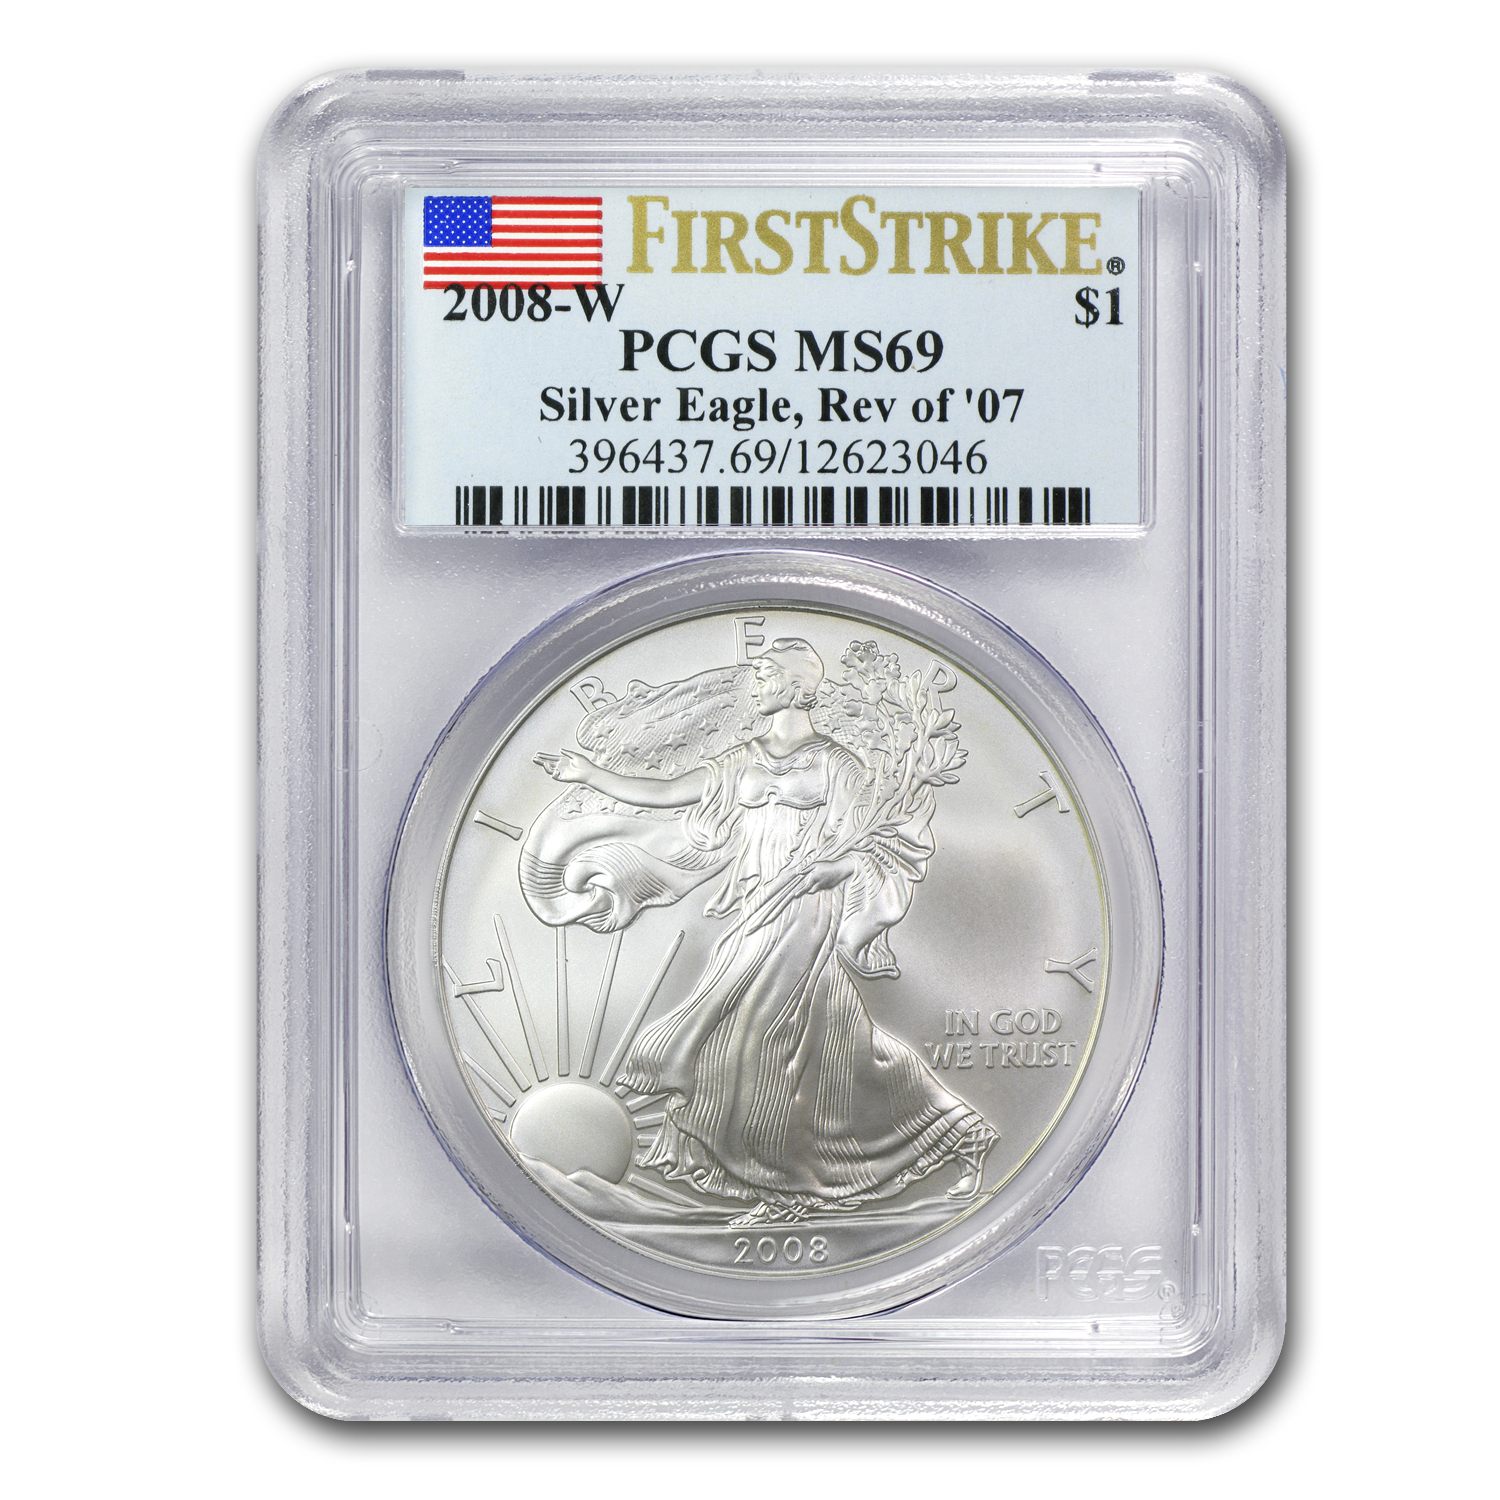 2008-W Burnished Silver American Eagle MS-69 PCGS (FS, Rev '07)